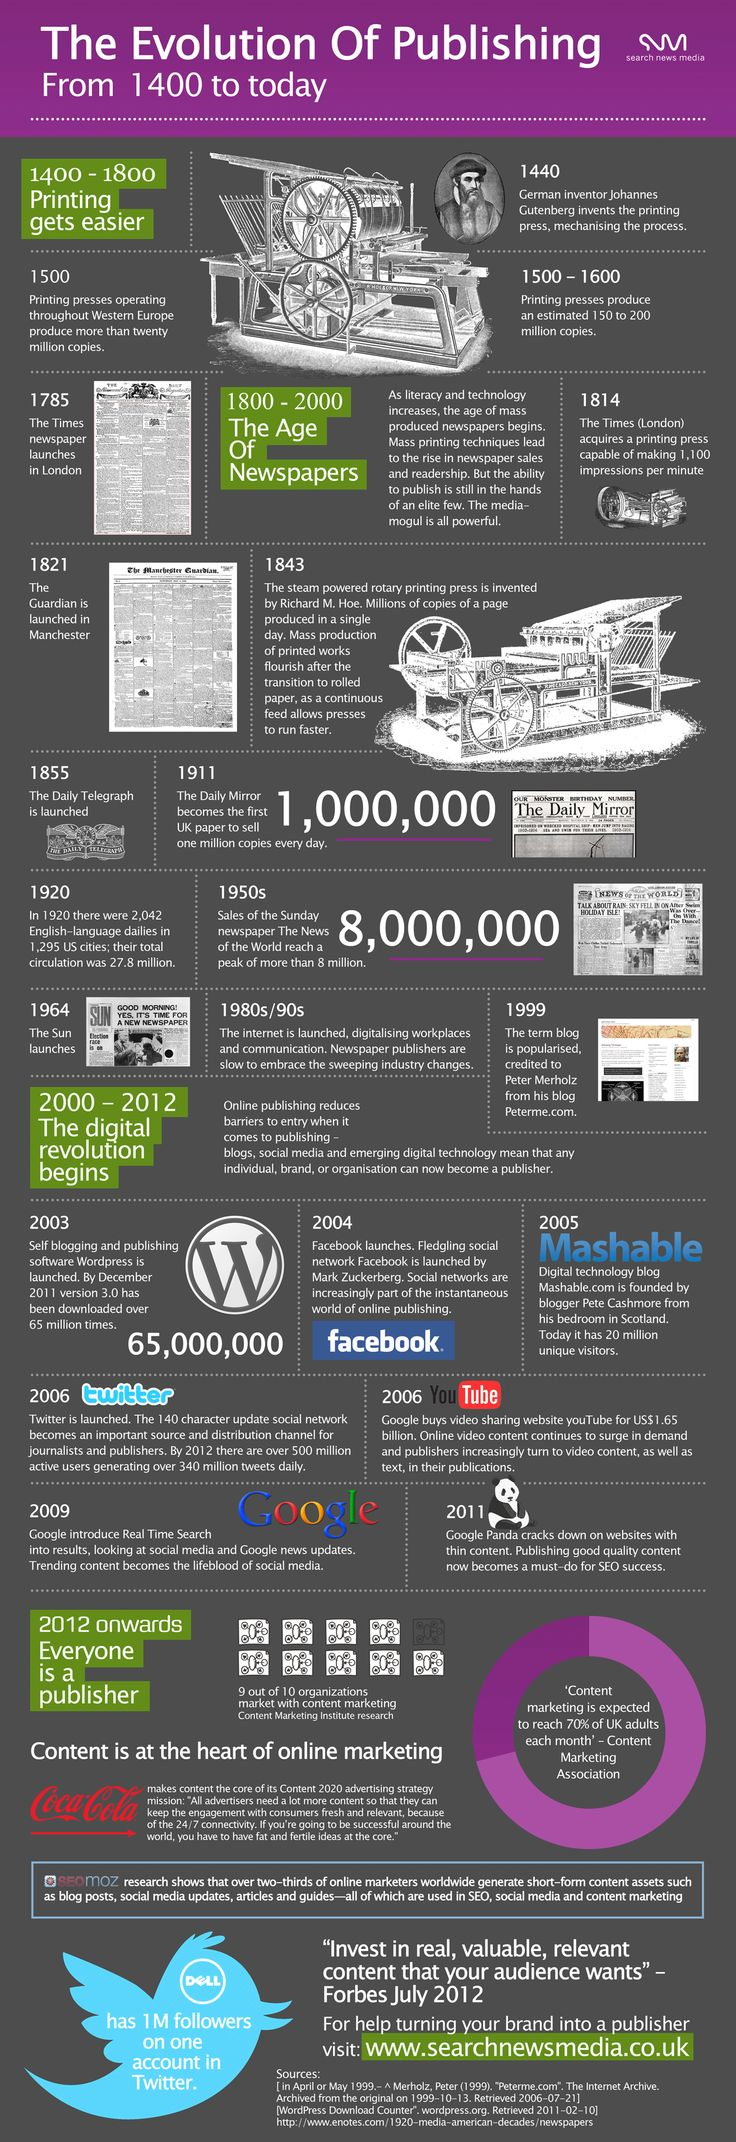 The evolution of #publishing from 1400 to today #infographic